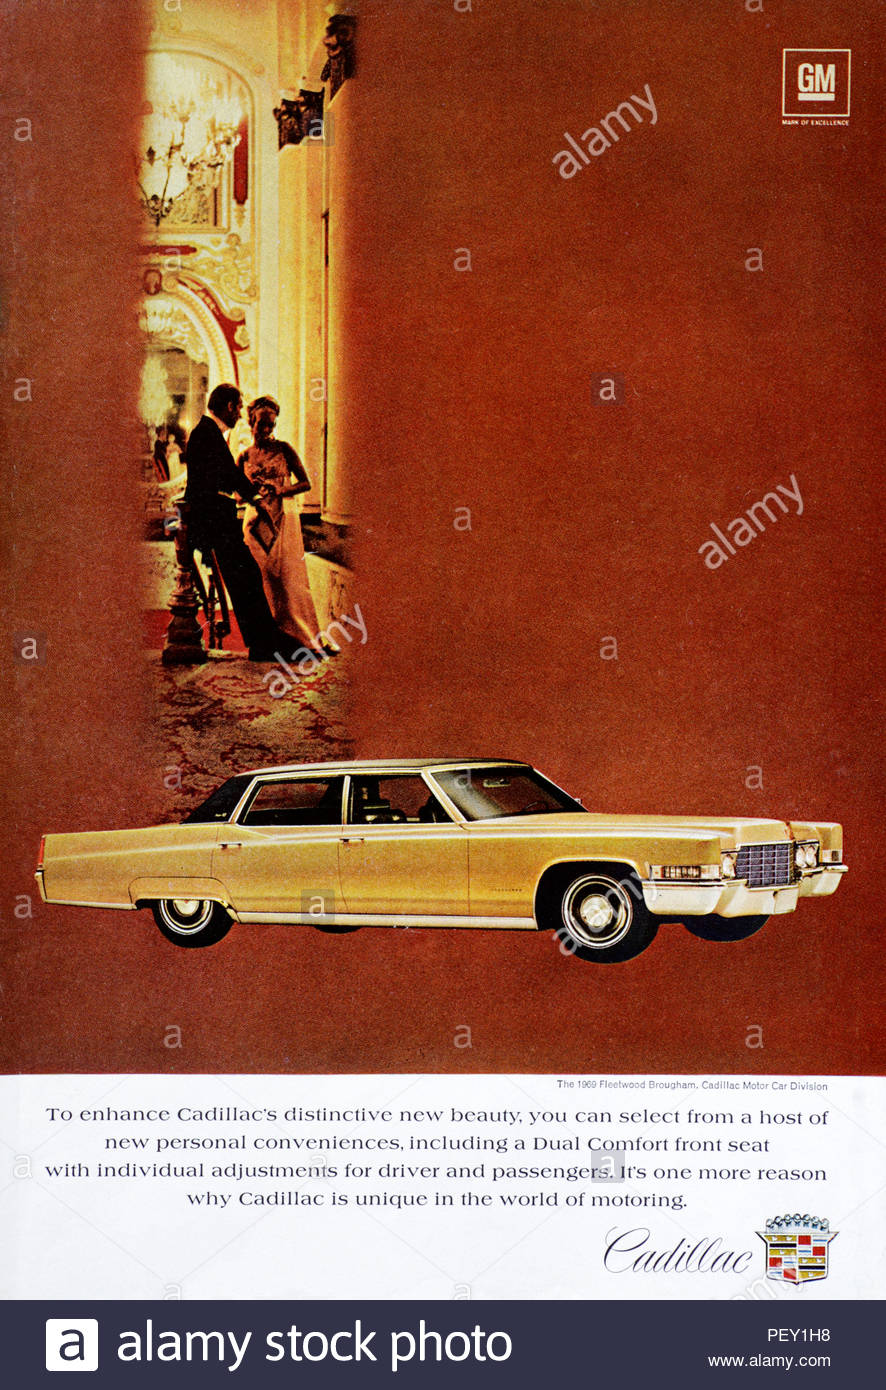 Vintage advertising for the Cadillac Fleetwood Brougham Car 1969 - Stock Image